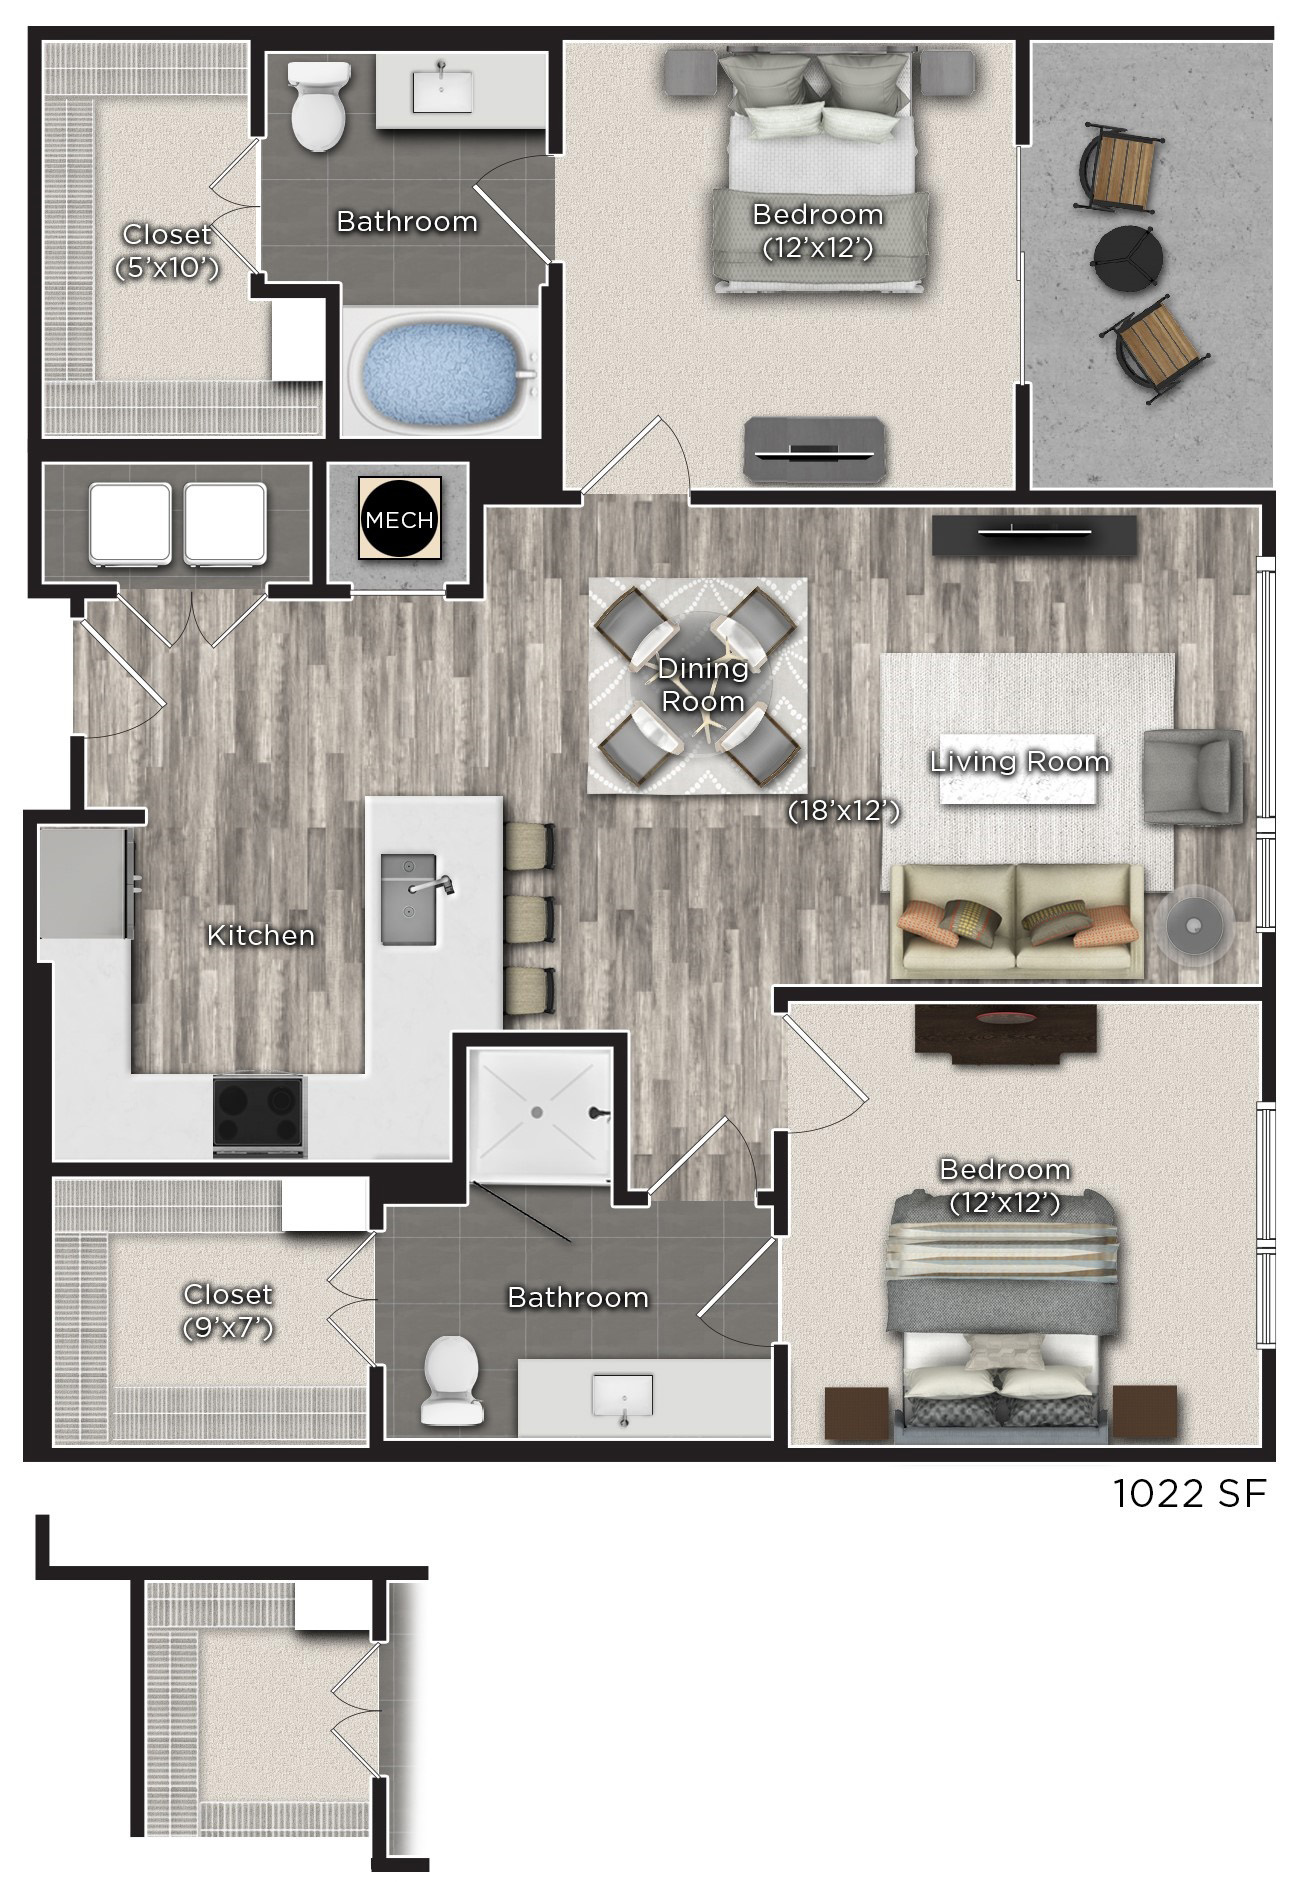 Tens on West - Floorplan - M